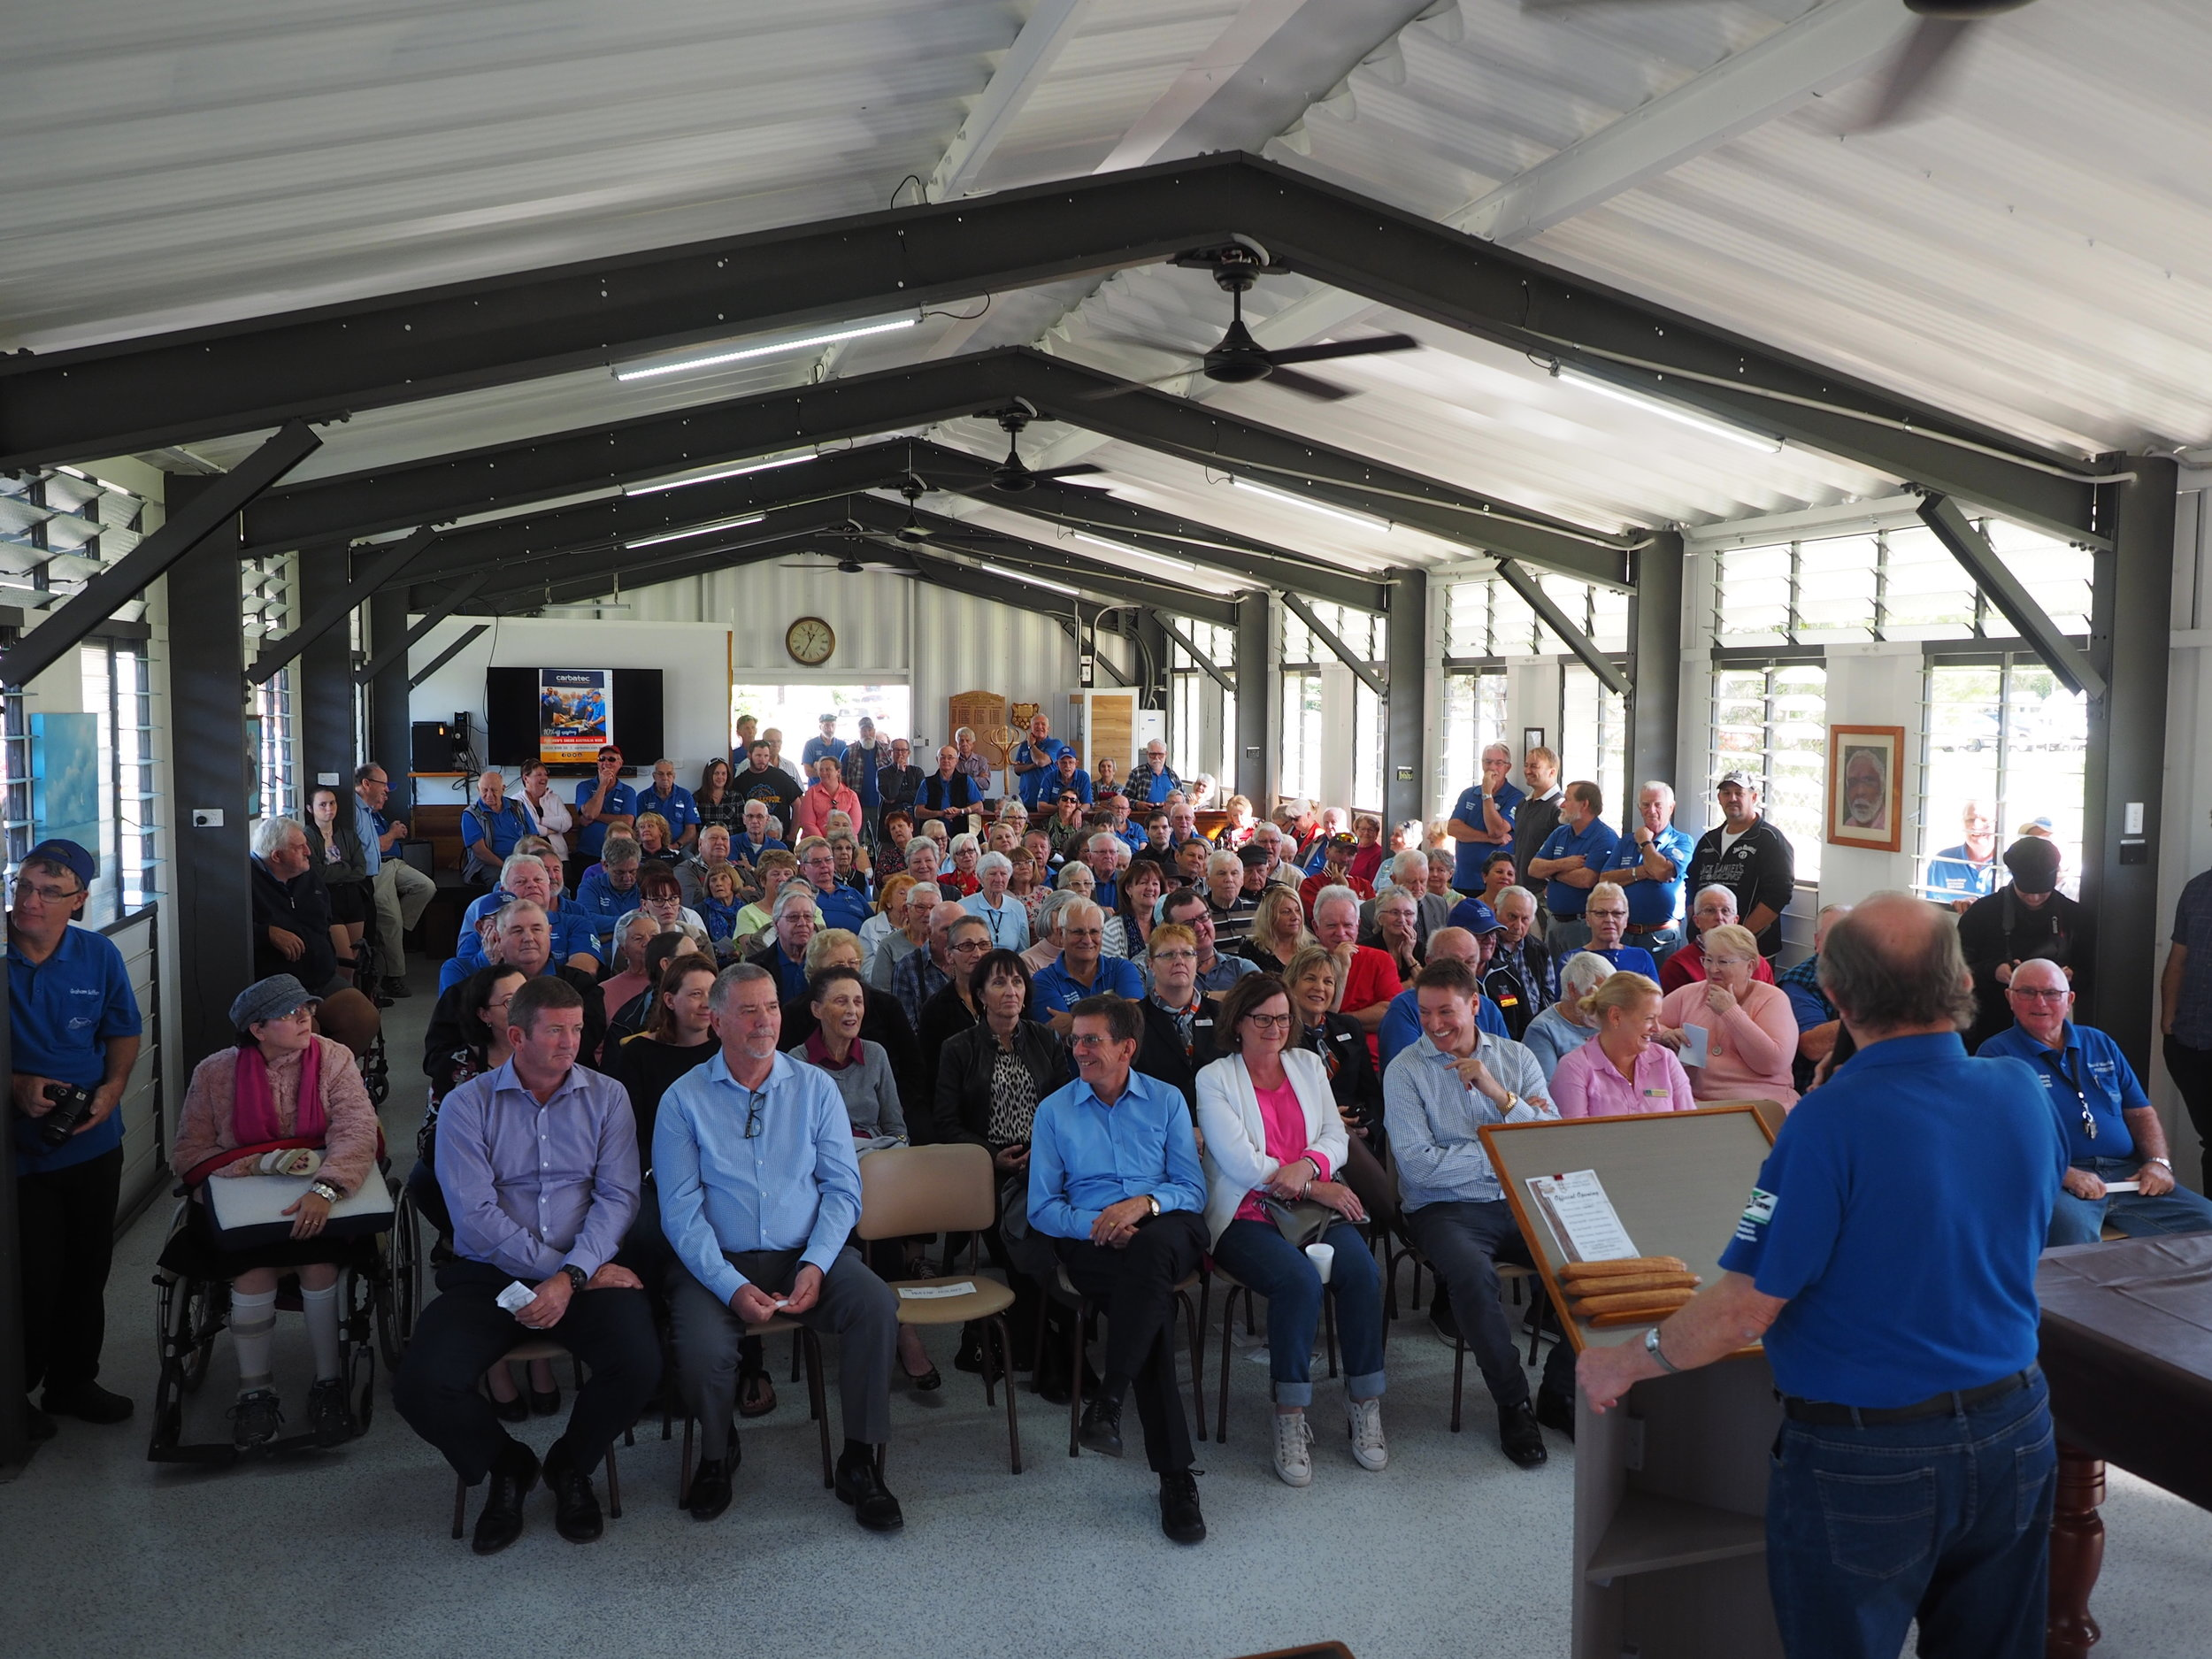 Attendance at the Wynnum Manly and Districts Men's Shed for the naming of the Allen May building. August 2018.